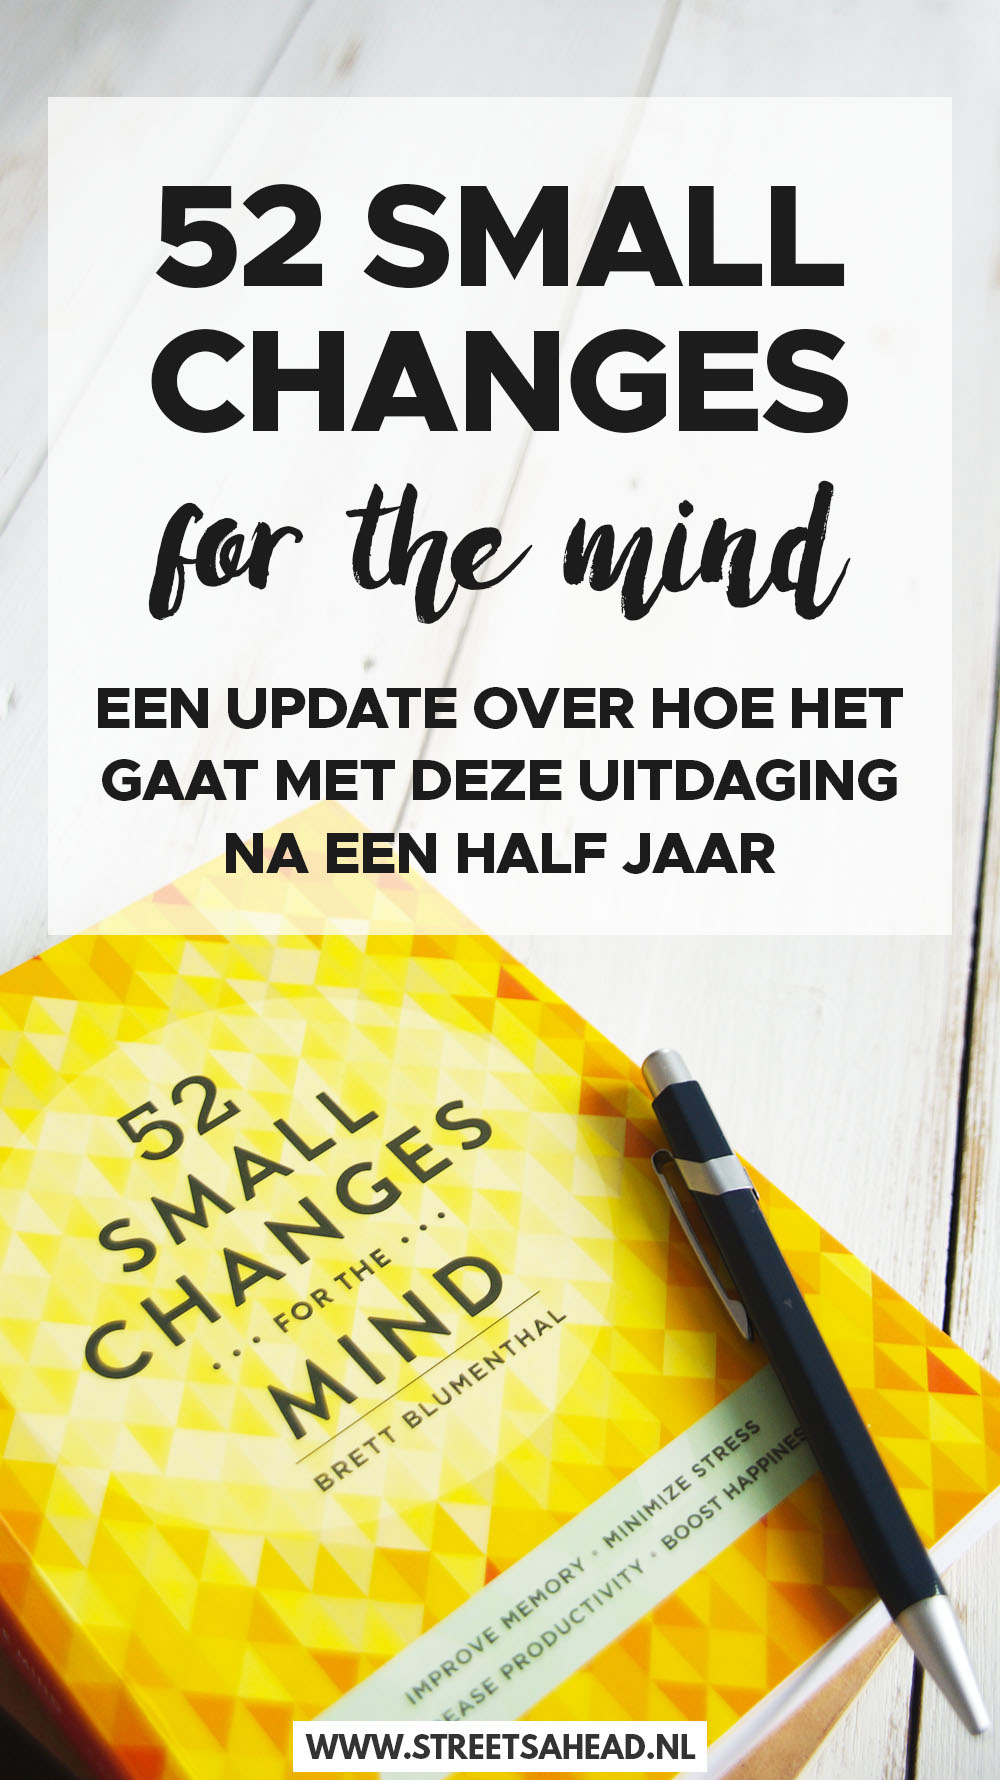 52 small changes na een half jaar